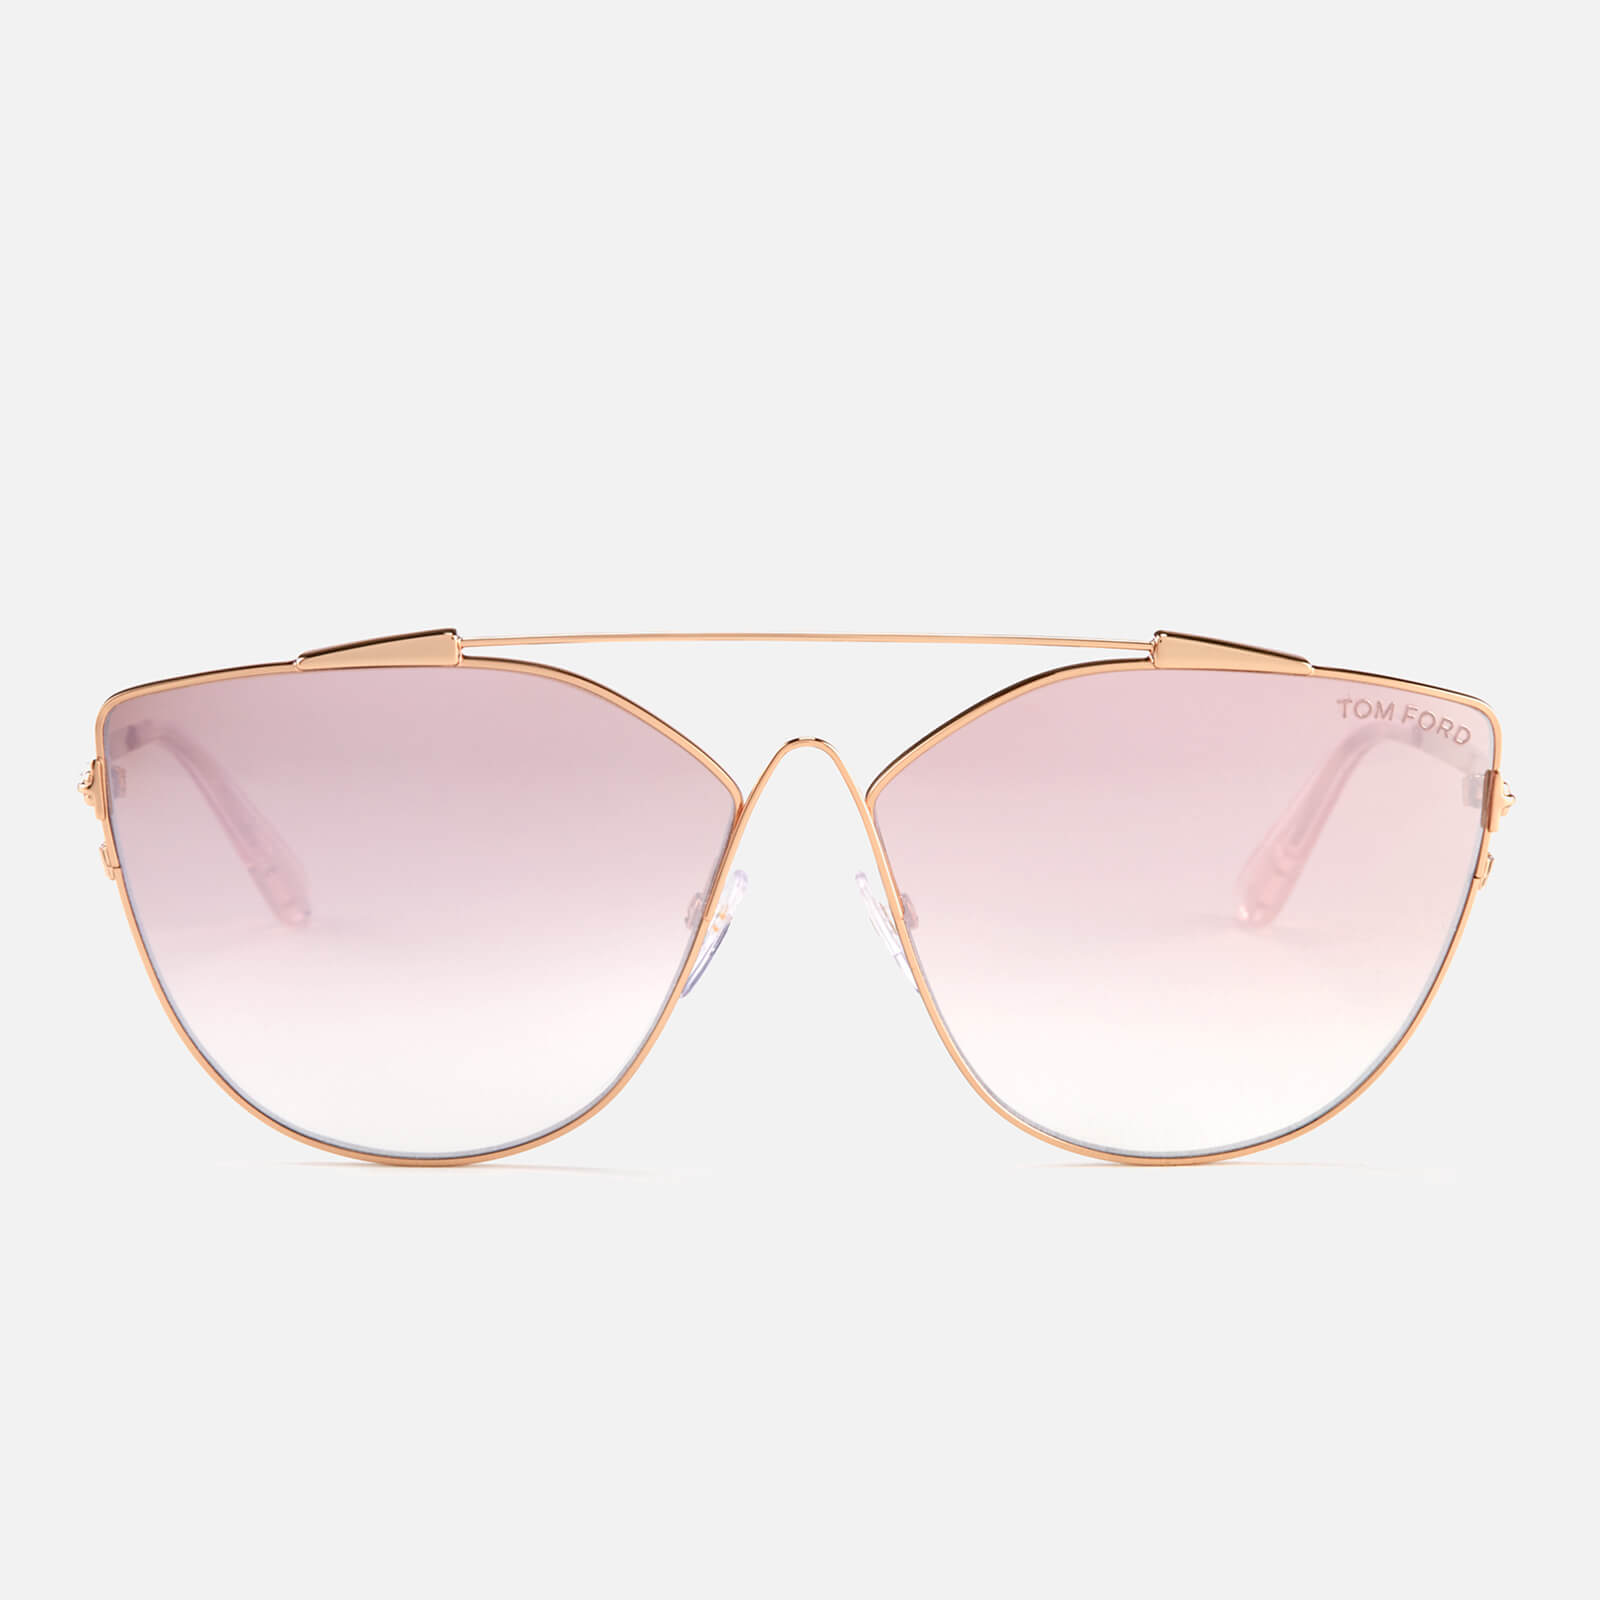 59c23c305565 Tom Ford Women's Jacquelyn Sunglasses - Gold/Mirror Violet Womens  Accessories | TheHut.com